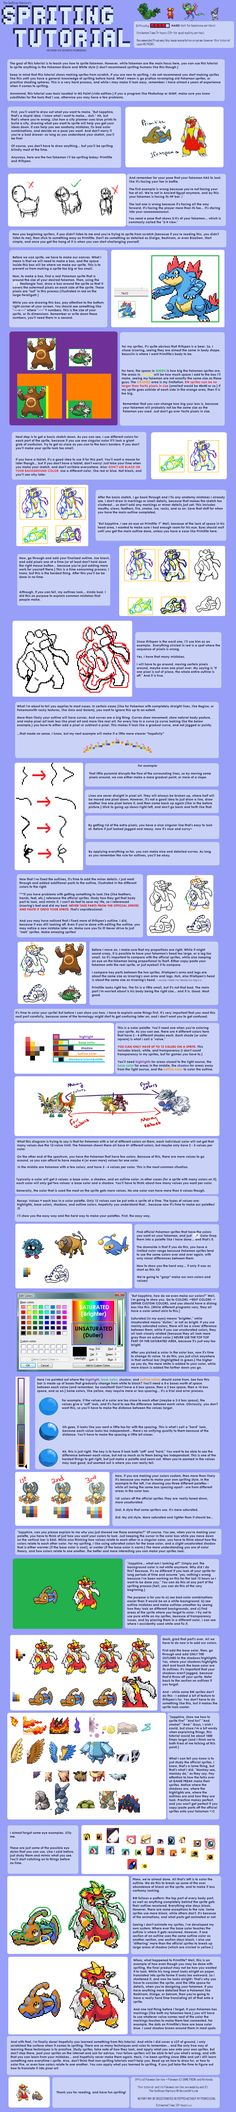 Spriting Fakemon Tutorial V.3 by The-Godlings-Rapture.deviantart.com on @DeviantArt